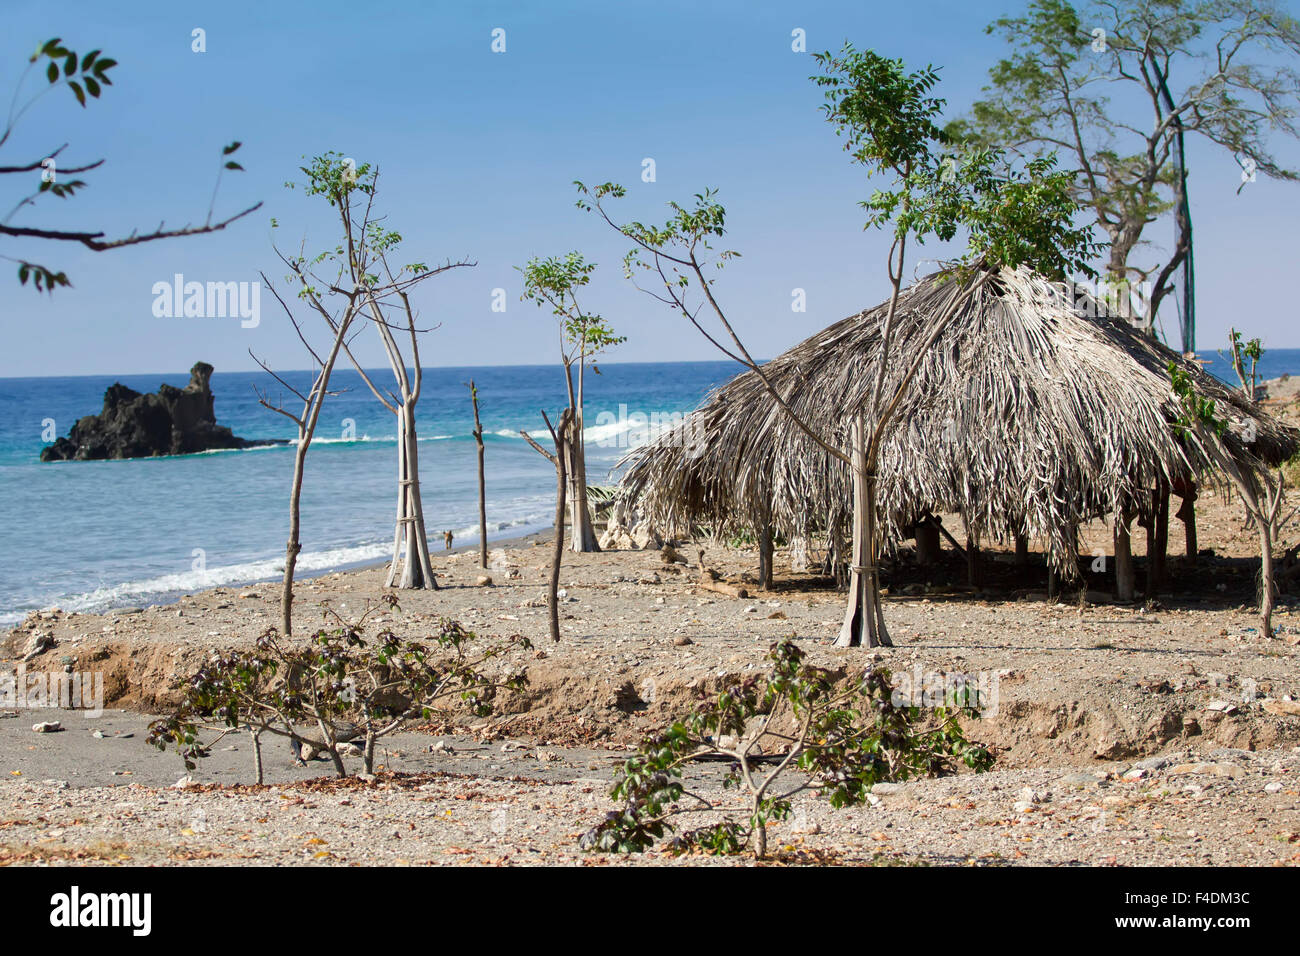 Tropical beach in East Timor and an empty hut to provide shadows - Stock Image